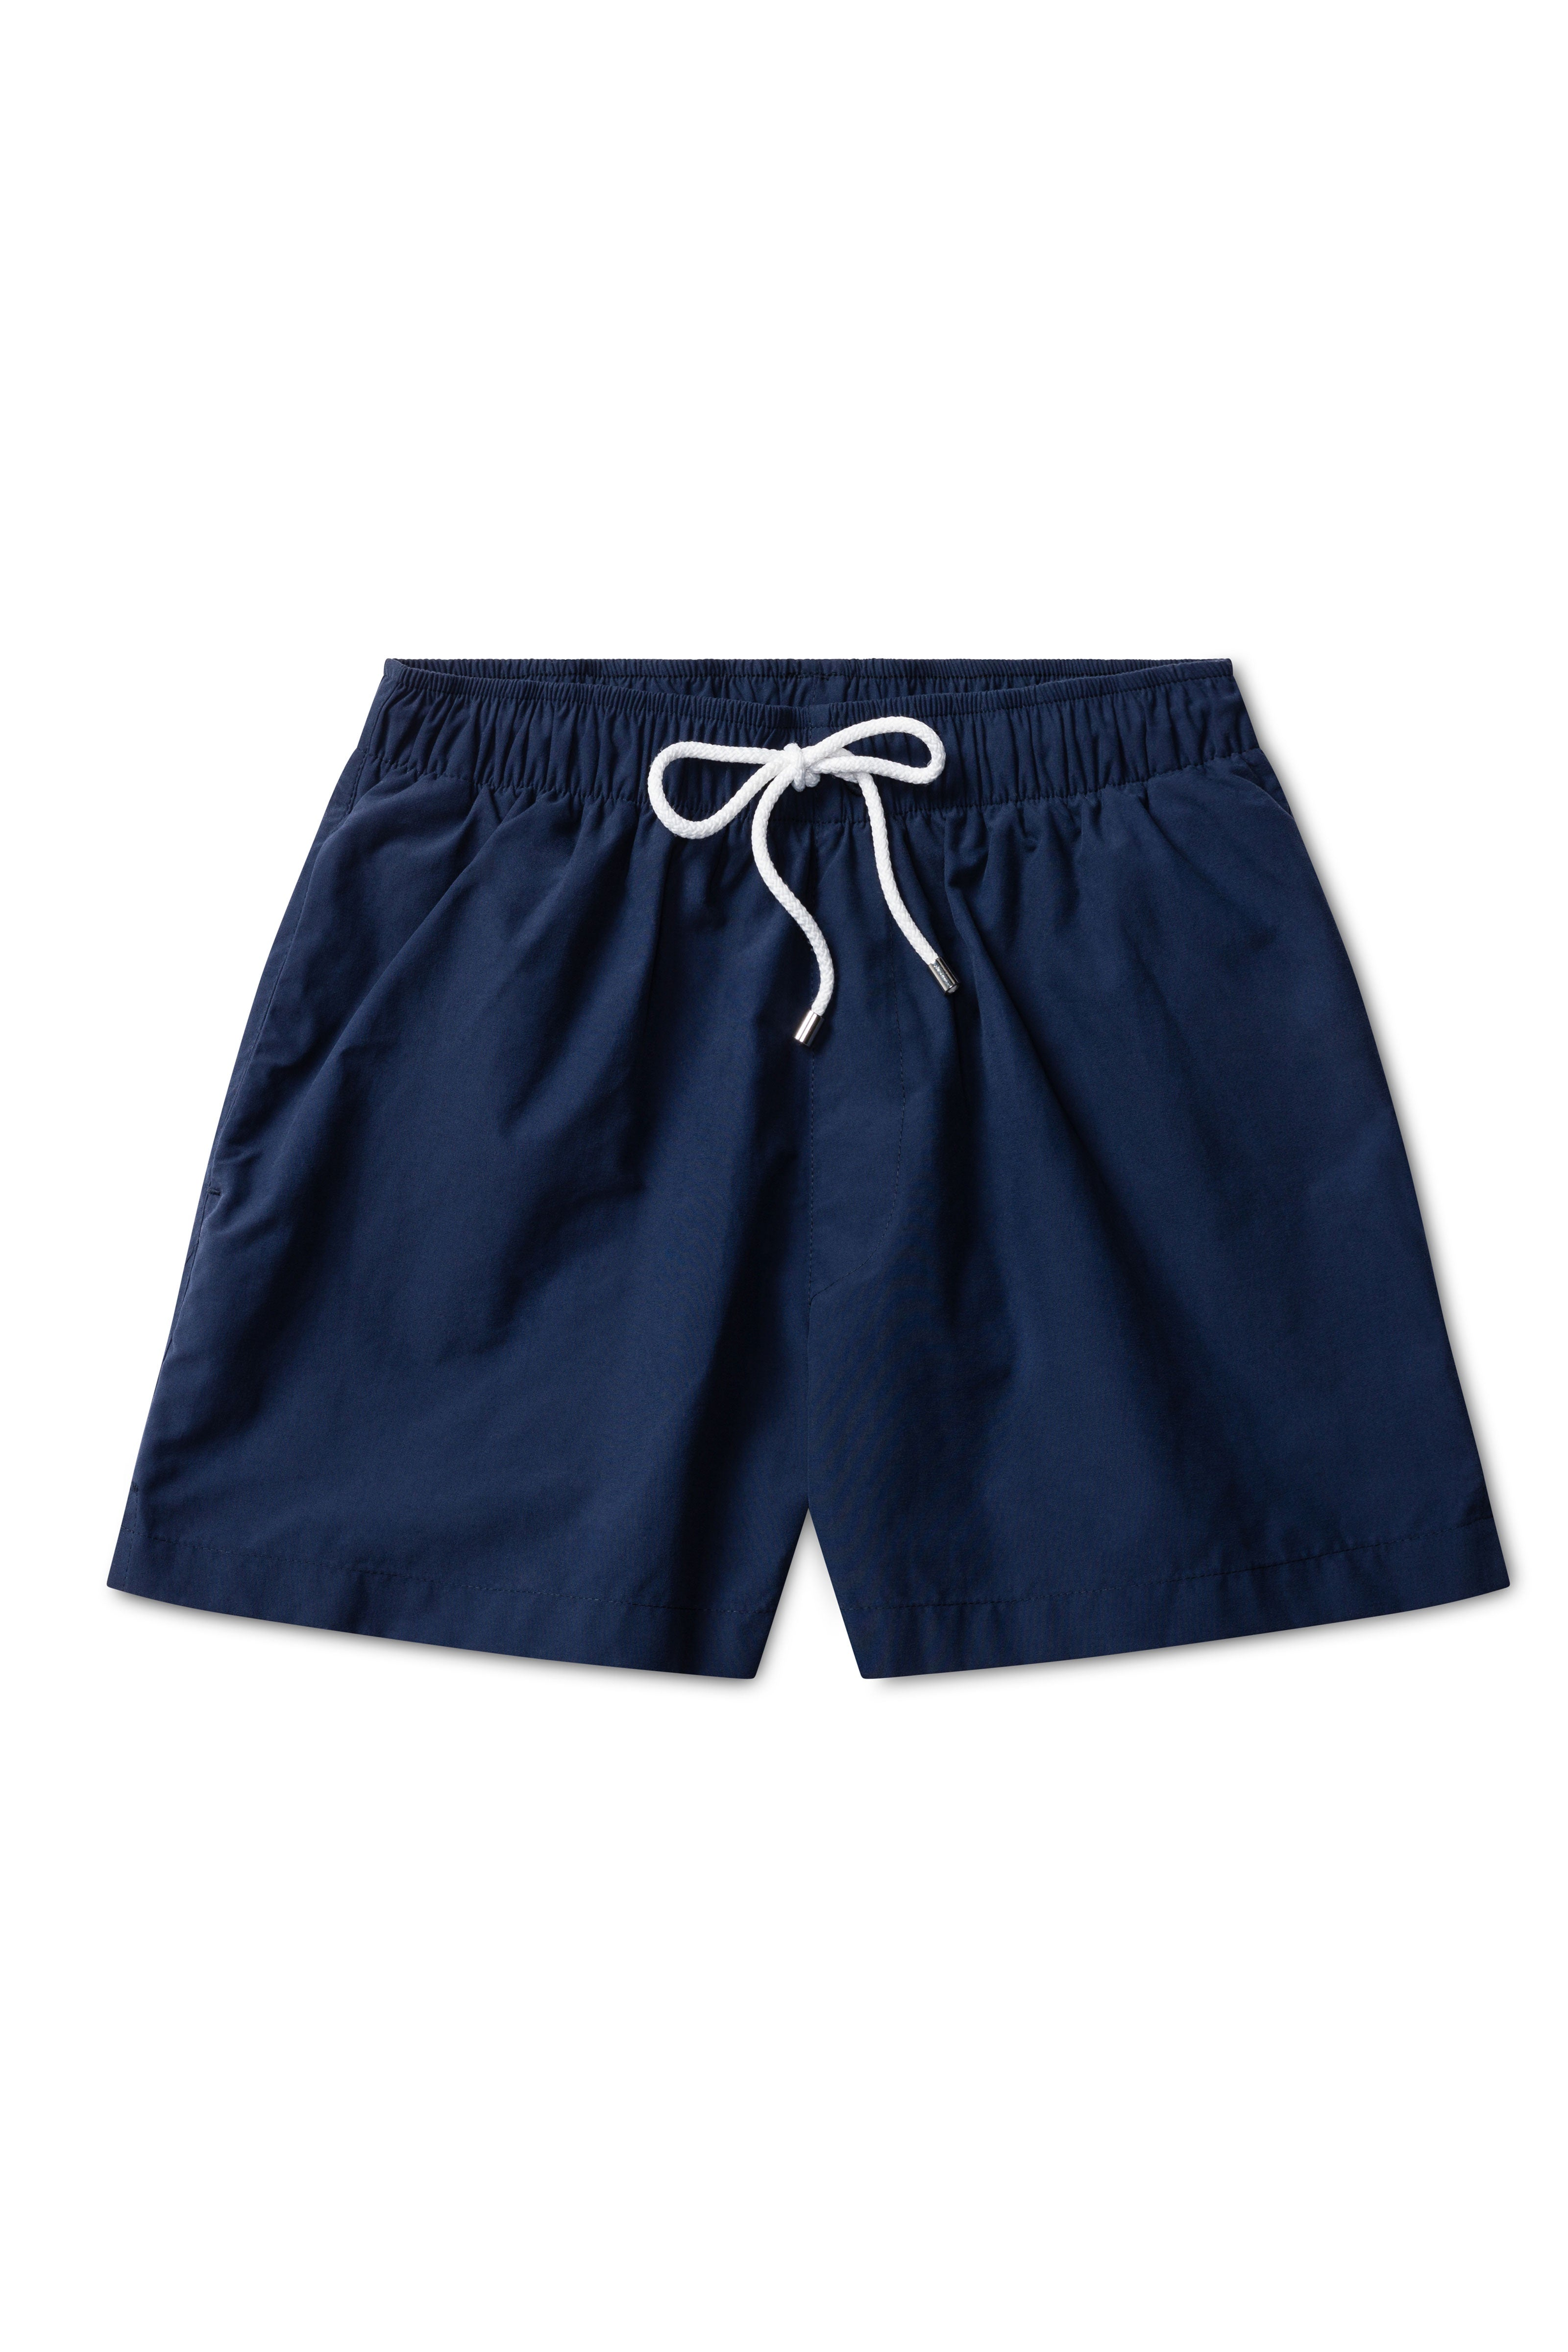 Solid Brushed Navy Swimmers